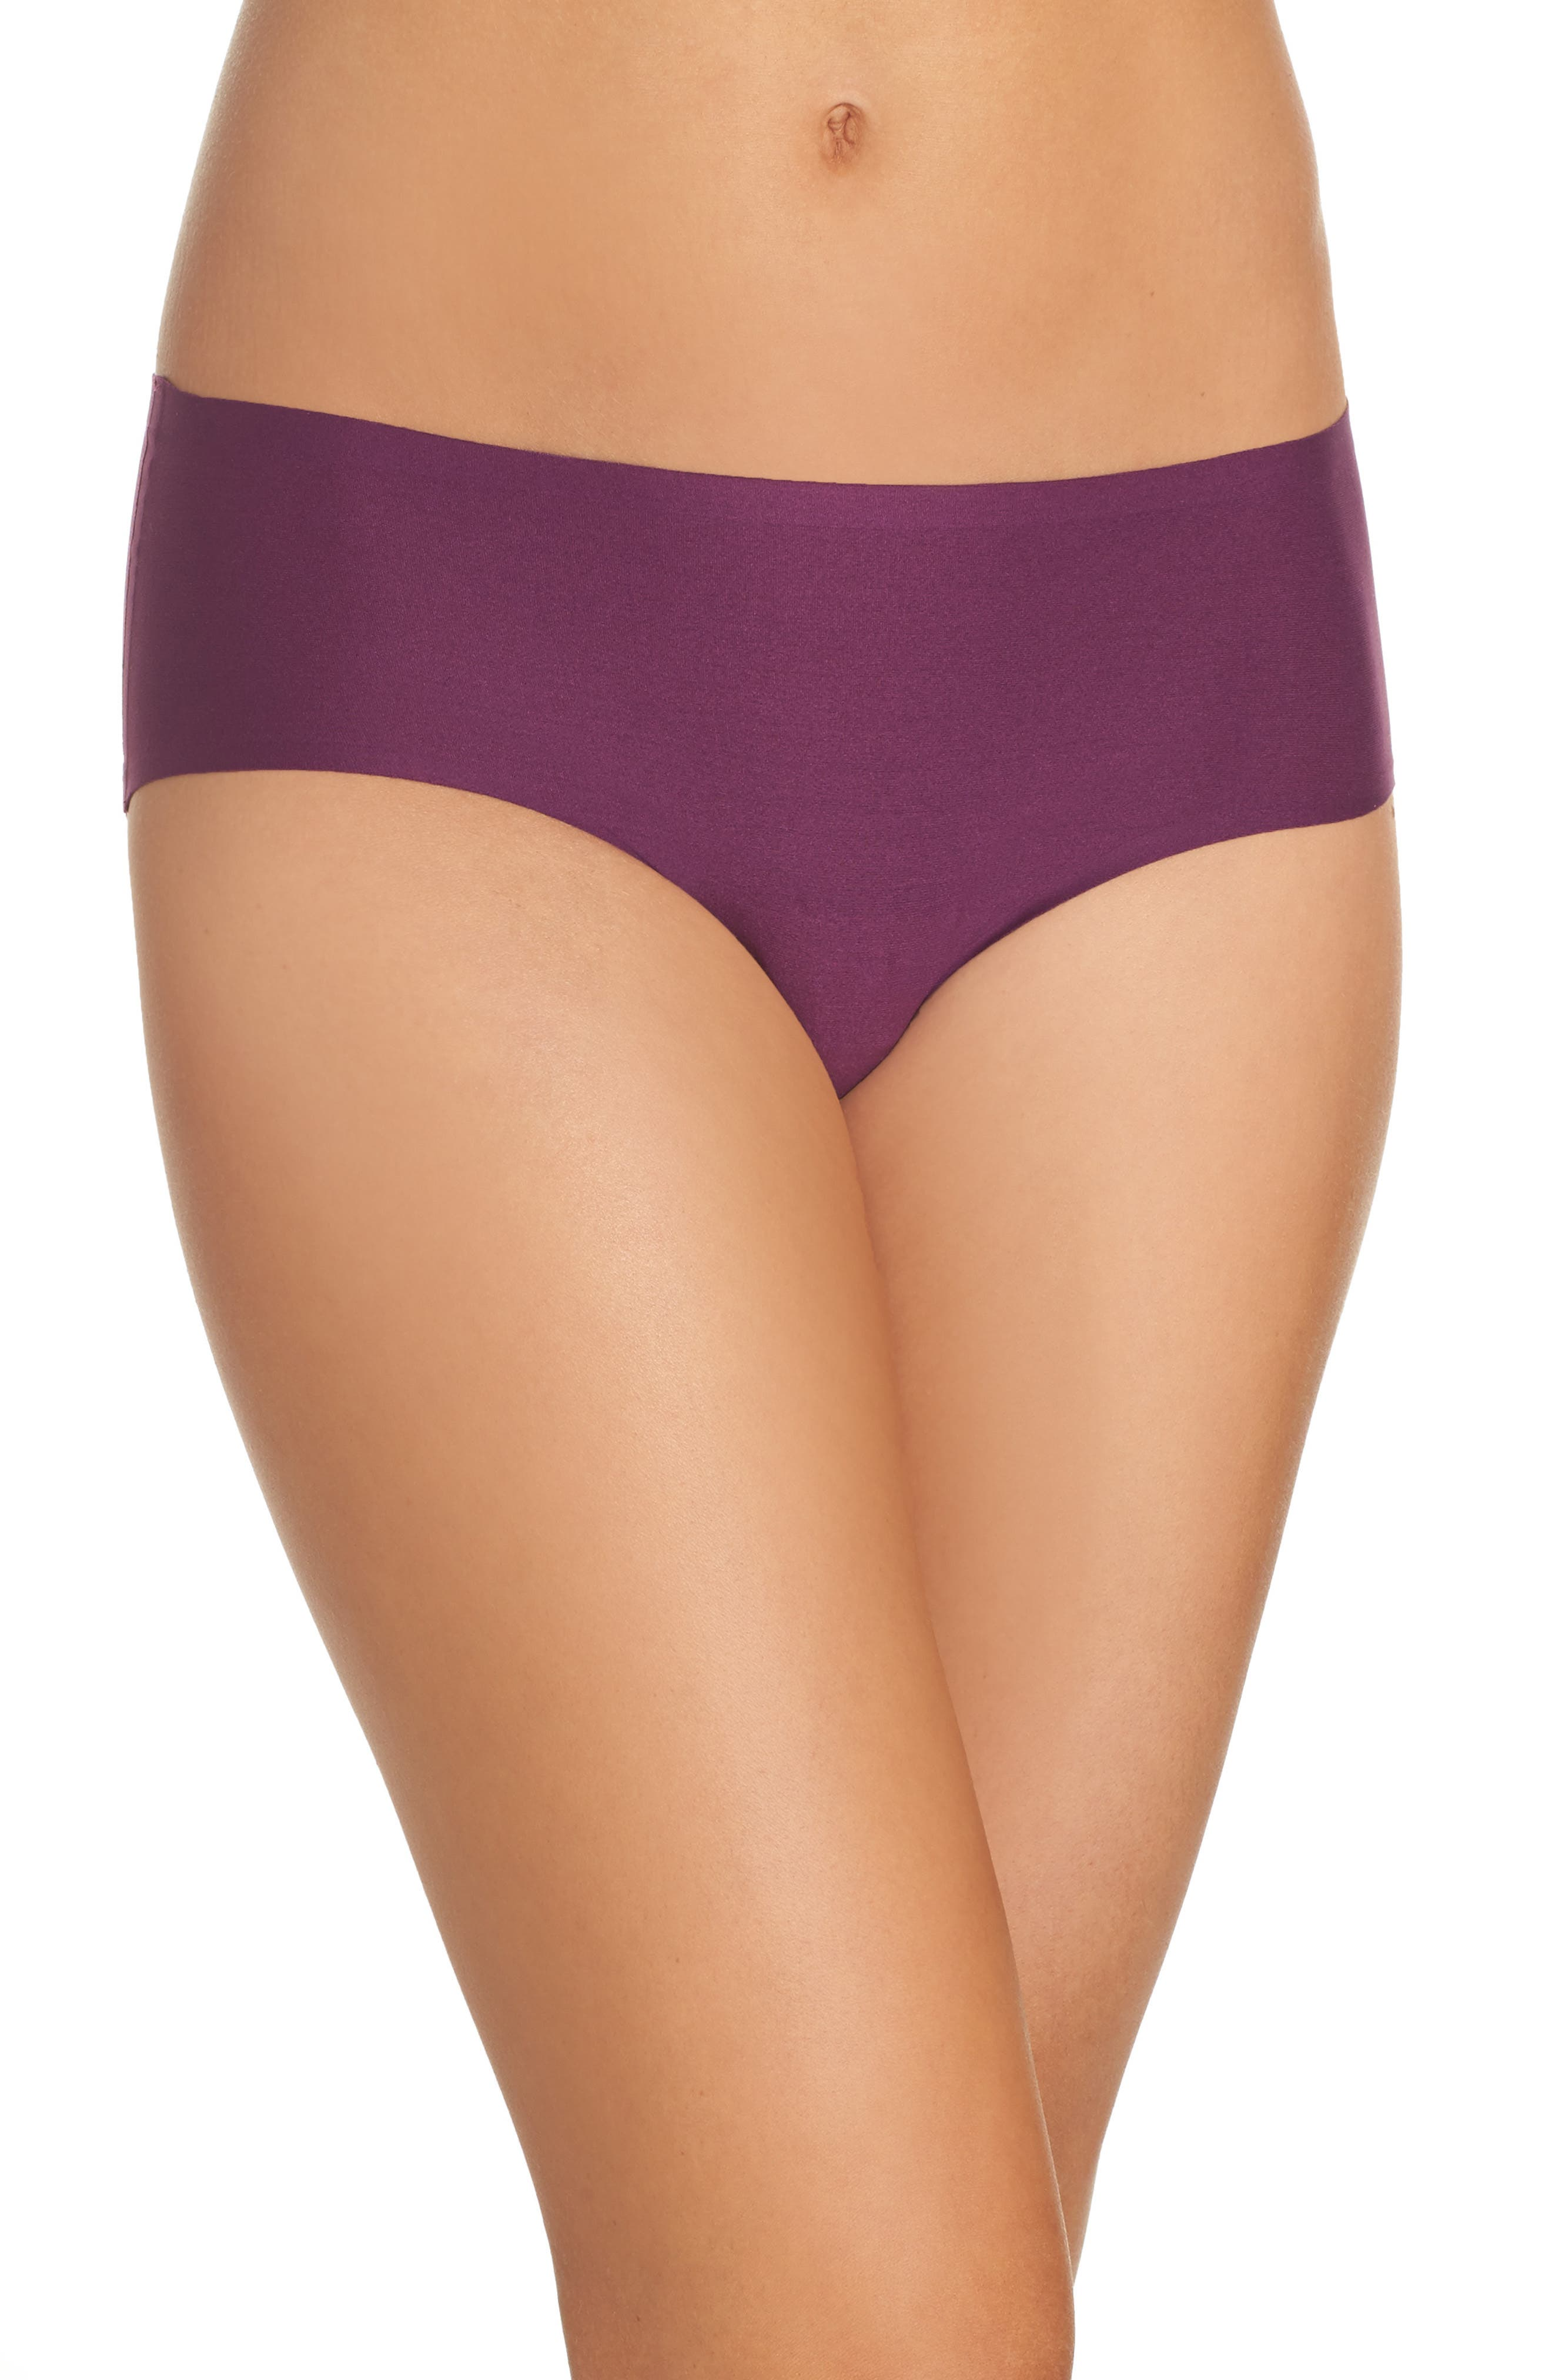 Main Image - Chantelle Intimates Soft Stretch Seamless Hipster Panties